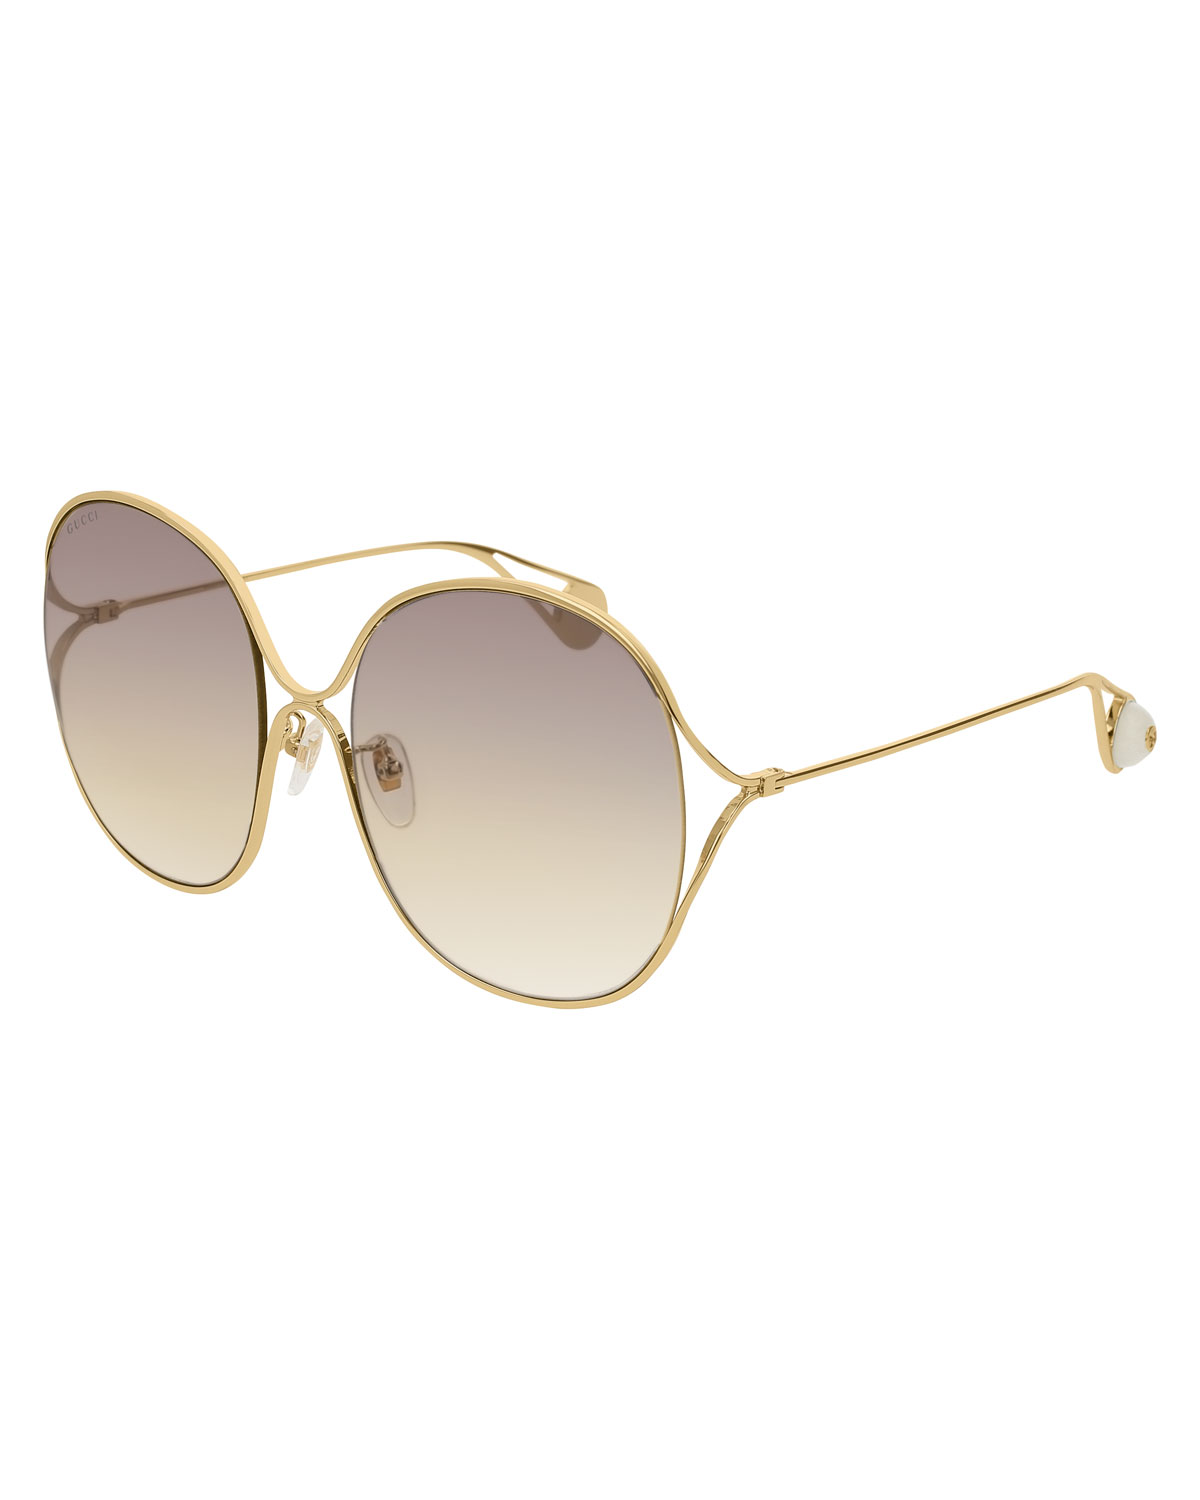 63cfd9ee5 Gucci Round Open-Temple Metal Sunglasses | Neiman Marcus